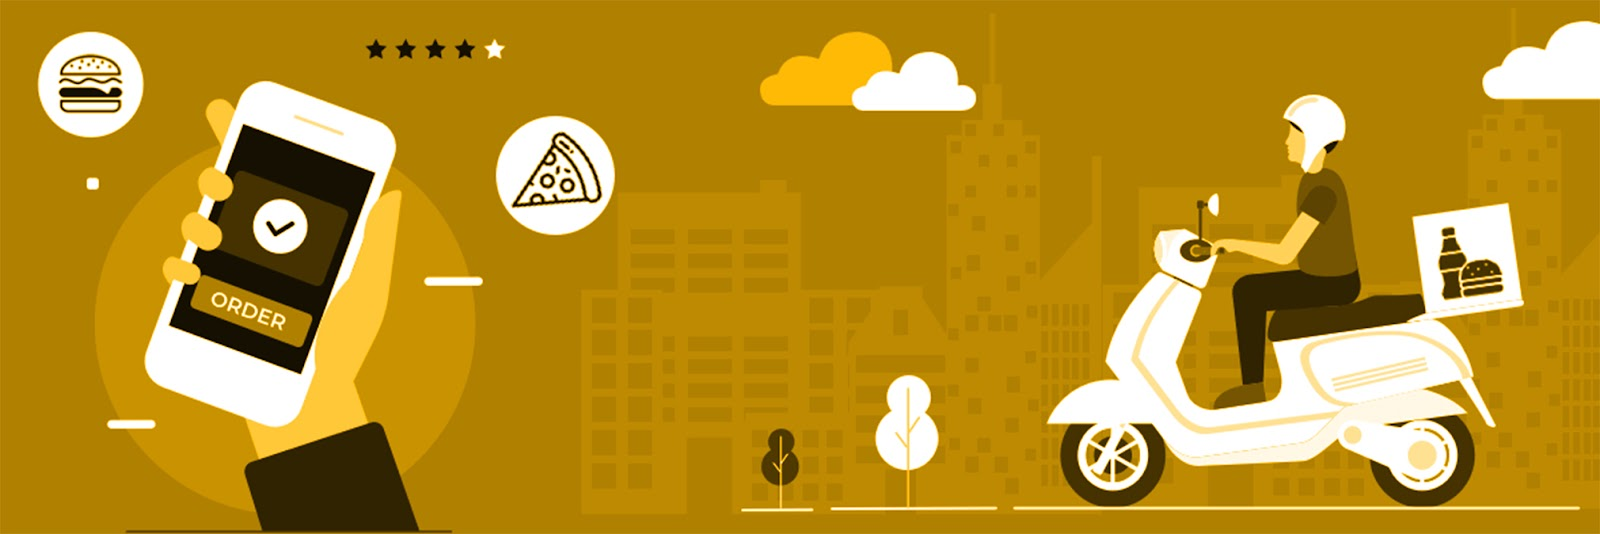 On-Demand Delivery Application like HungerStation is in high demand - Contact YelloStack - Mobile Application Development Company in Saudi Arabia